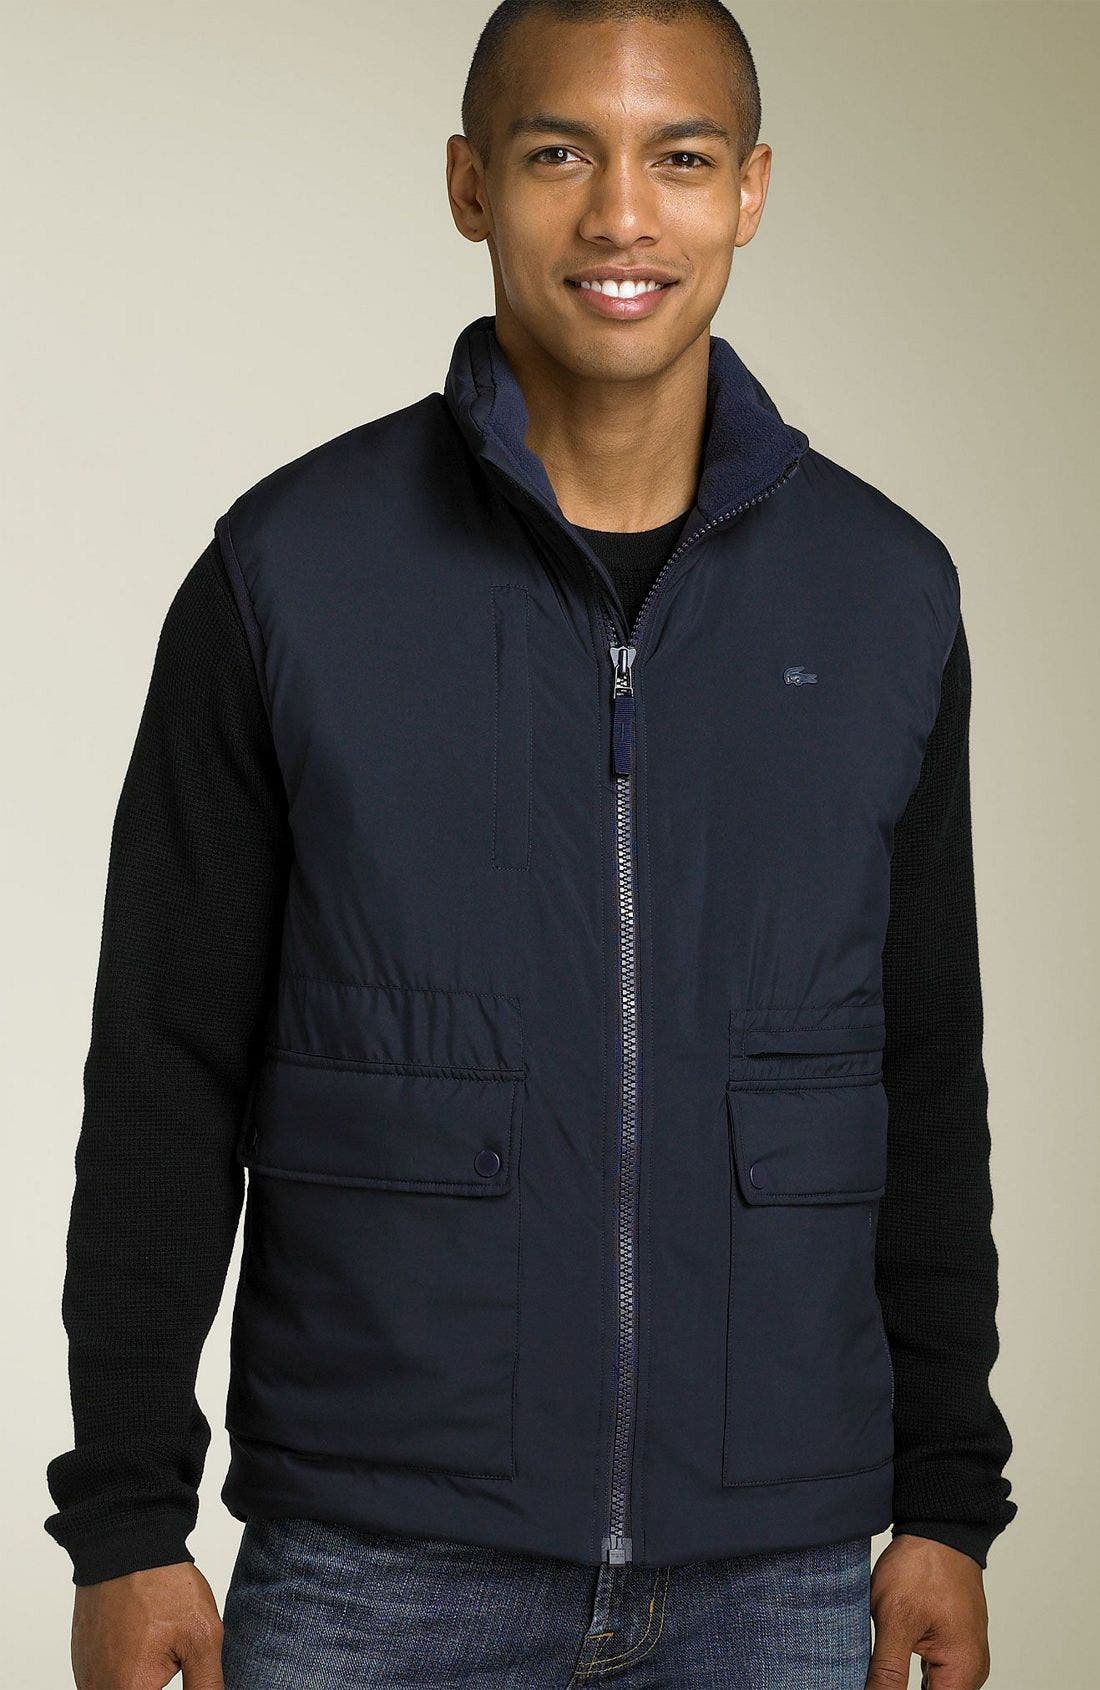 Alternate Image 1 Selected - Lacoste Insulated Vest